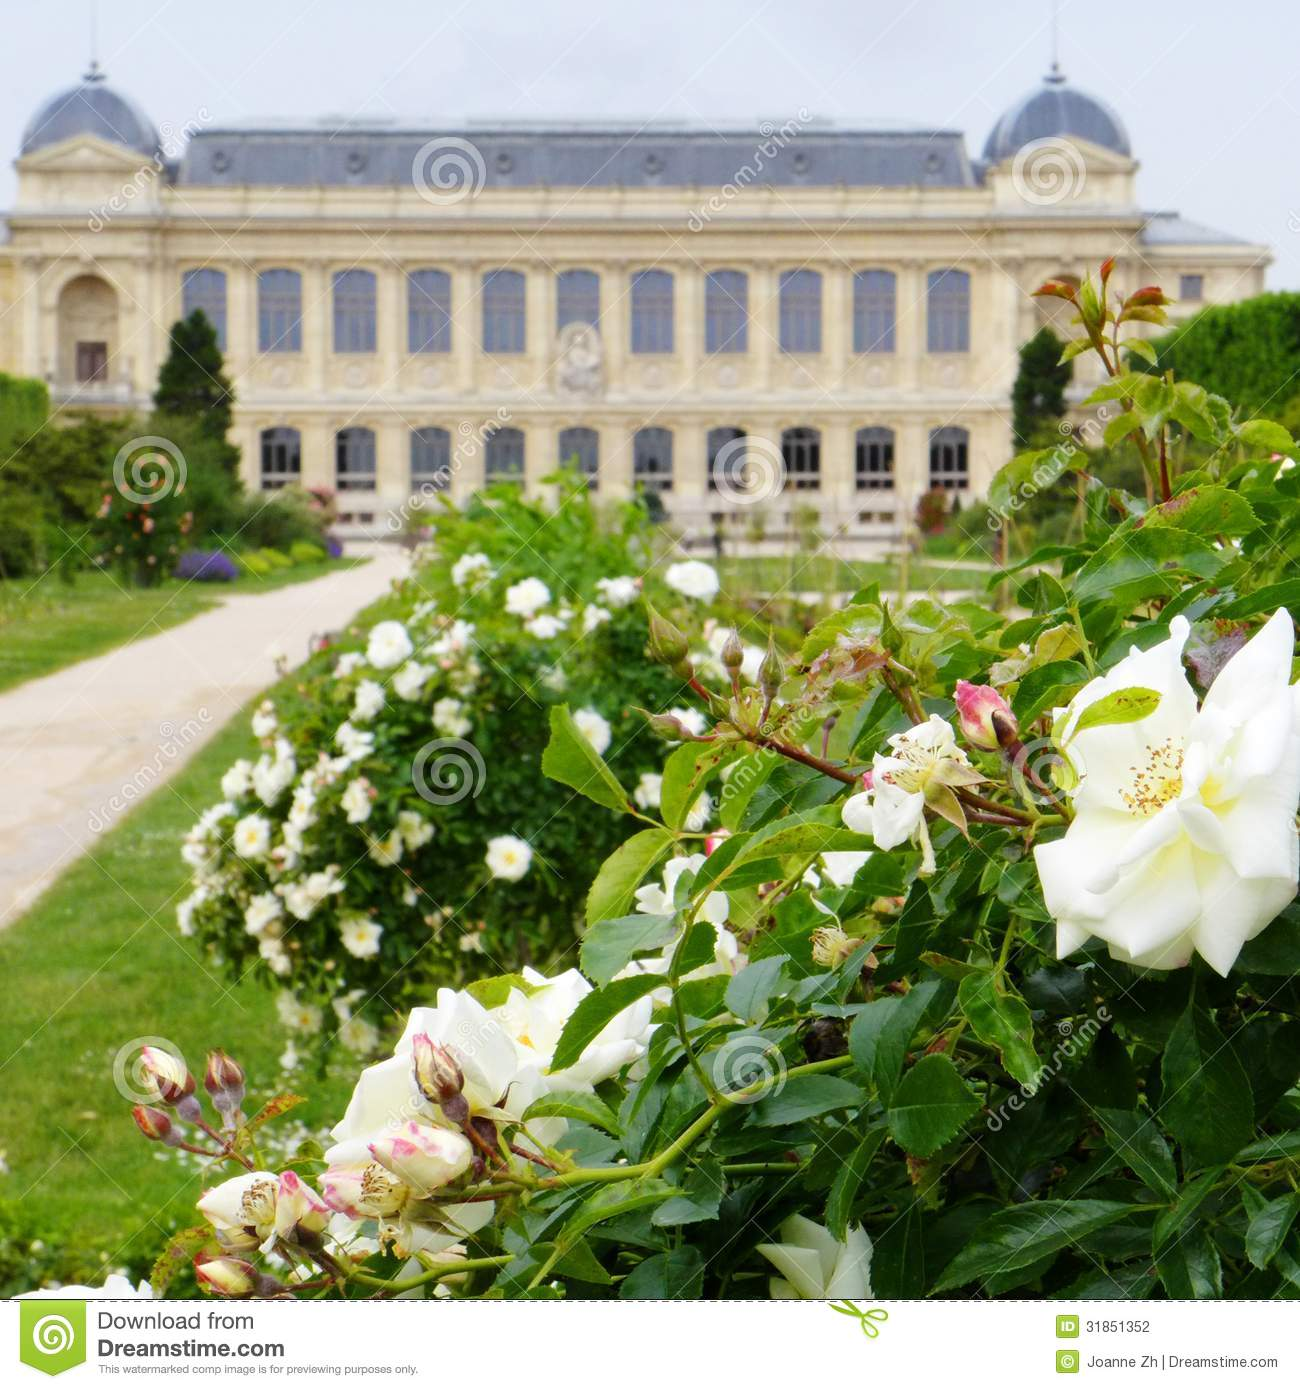 Jardin des plantes paris france stock photography for Jardin plantes paris